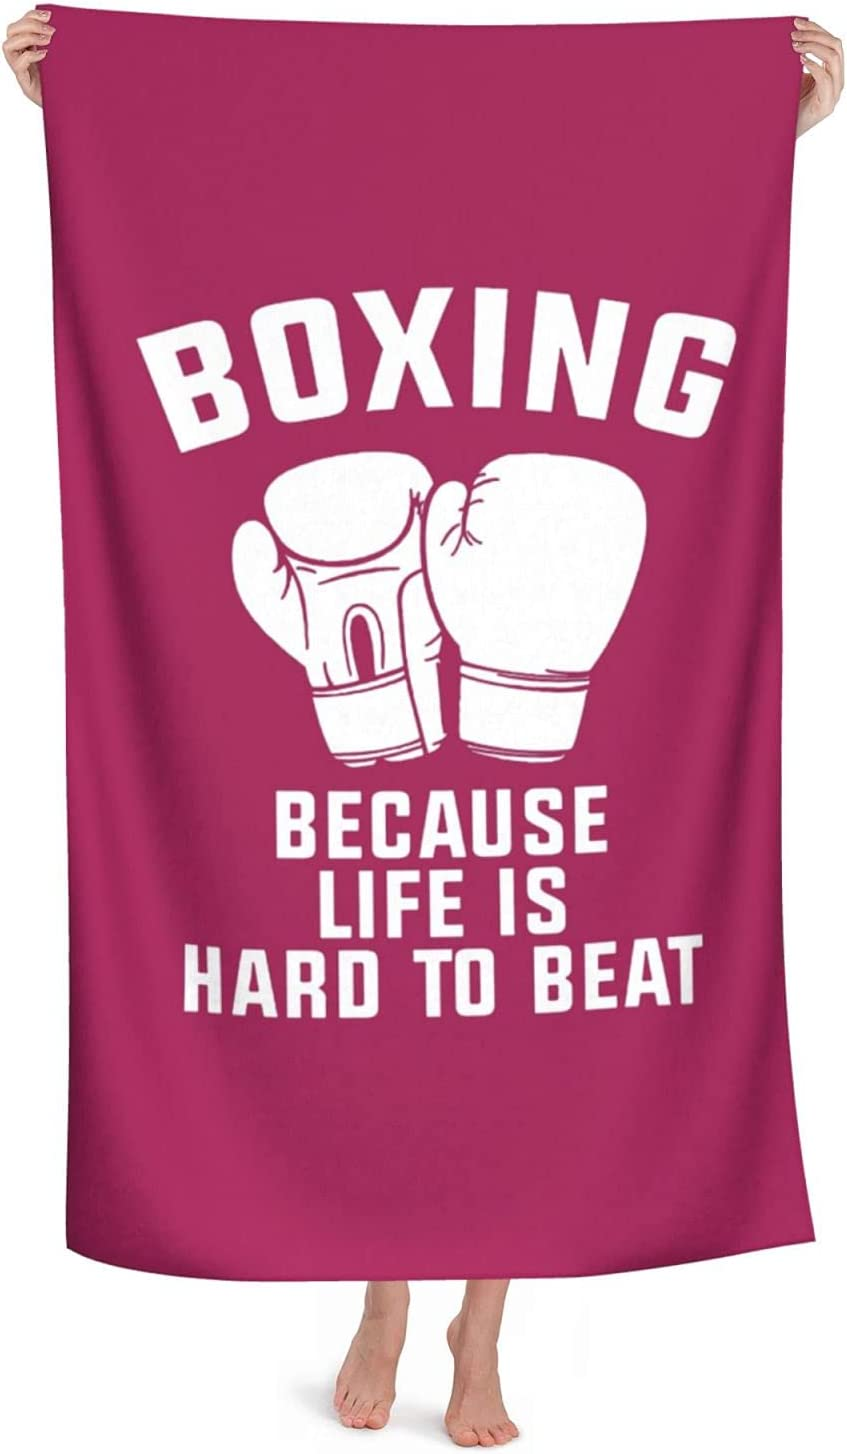 Boxing Because Life is Hard to Elegant Large Bath Max 69% OFF Beach To Beat-1 Towels